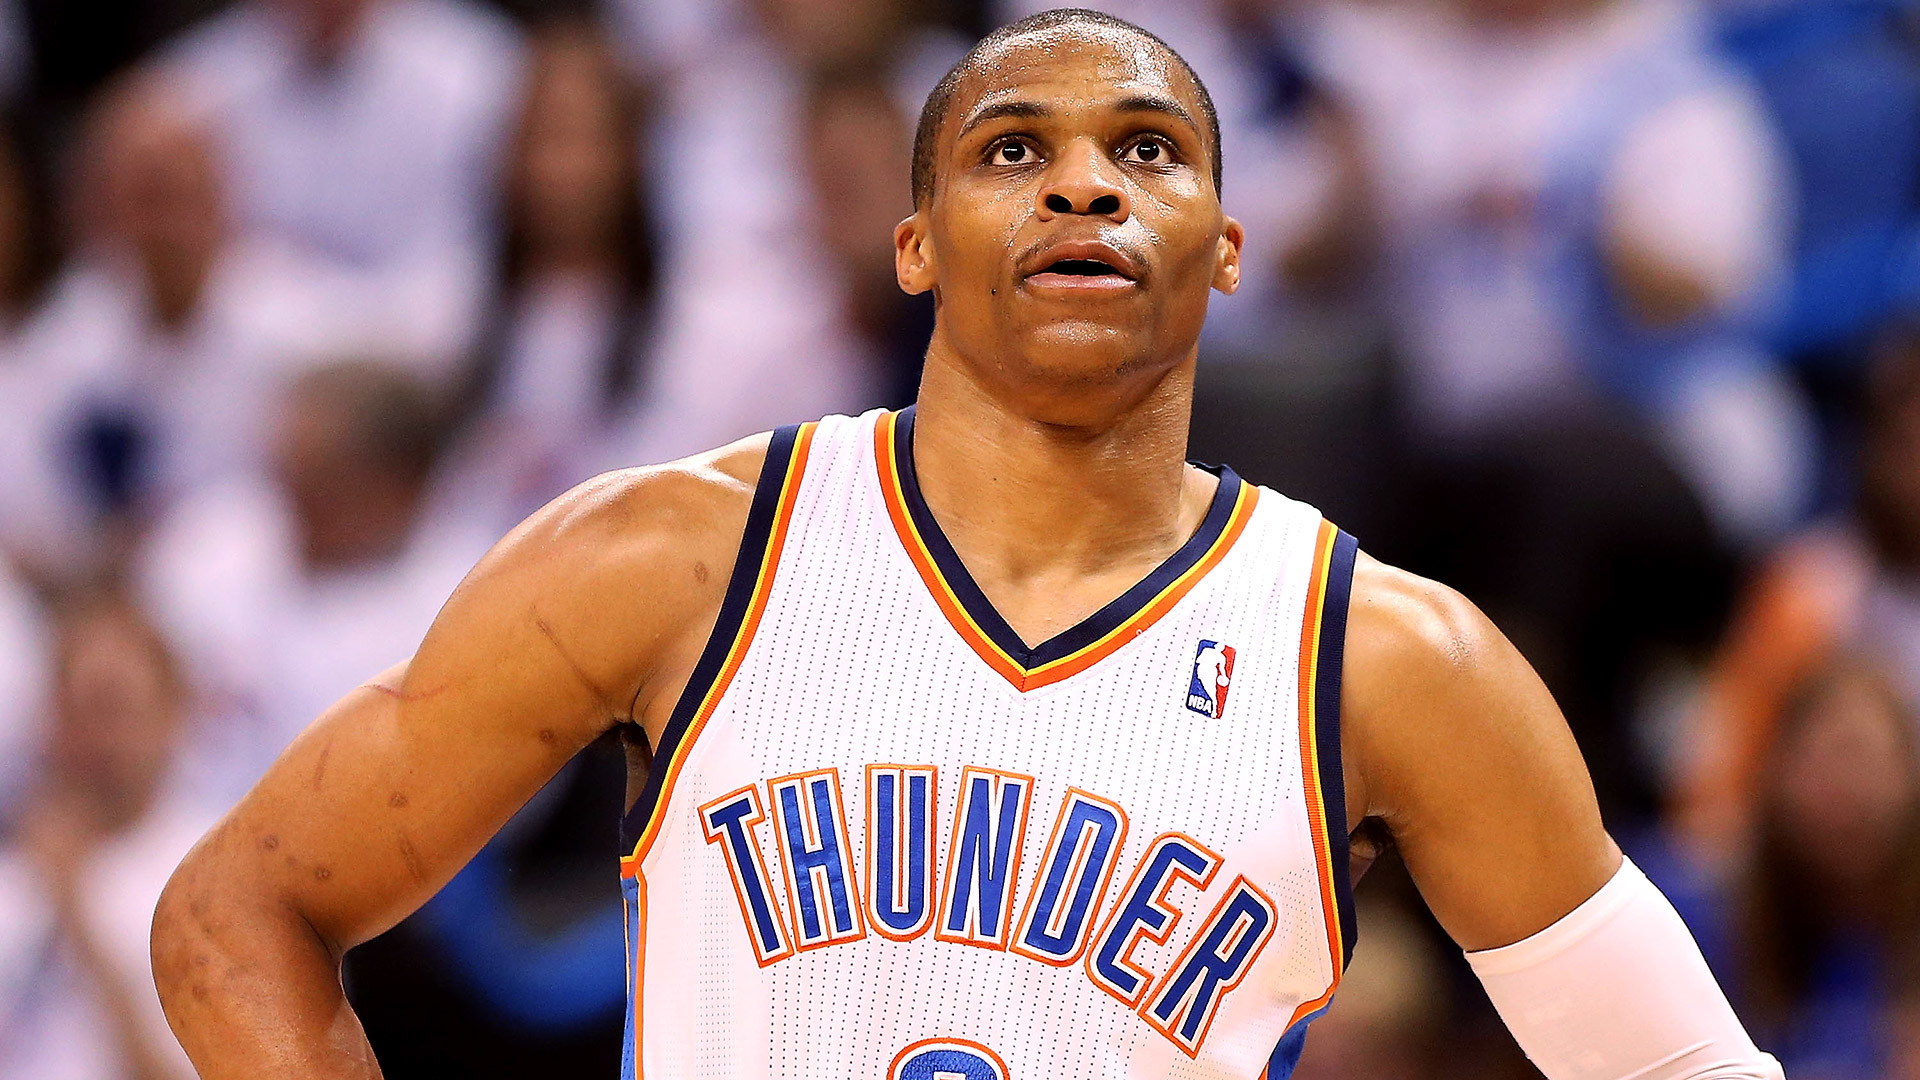 Russell Westbrook HD Wallpapers for Mobile.